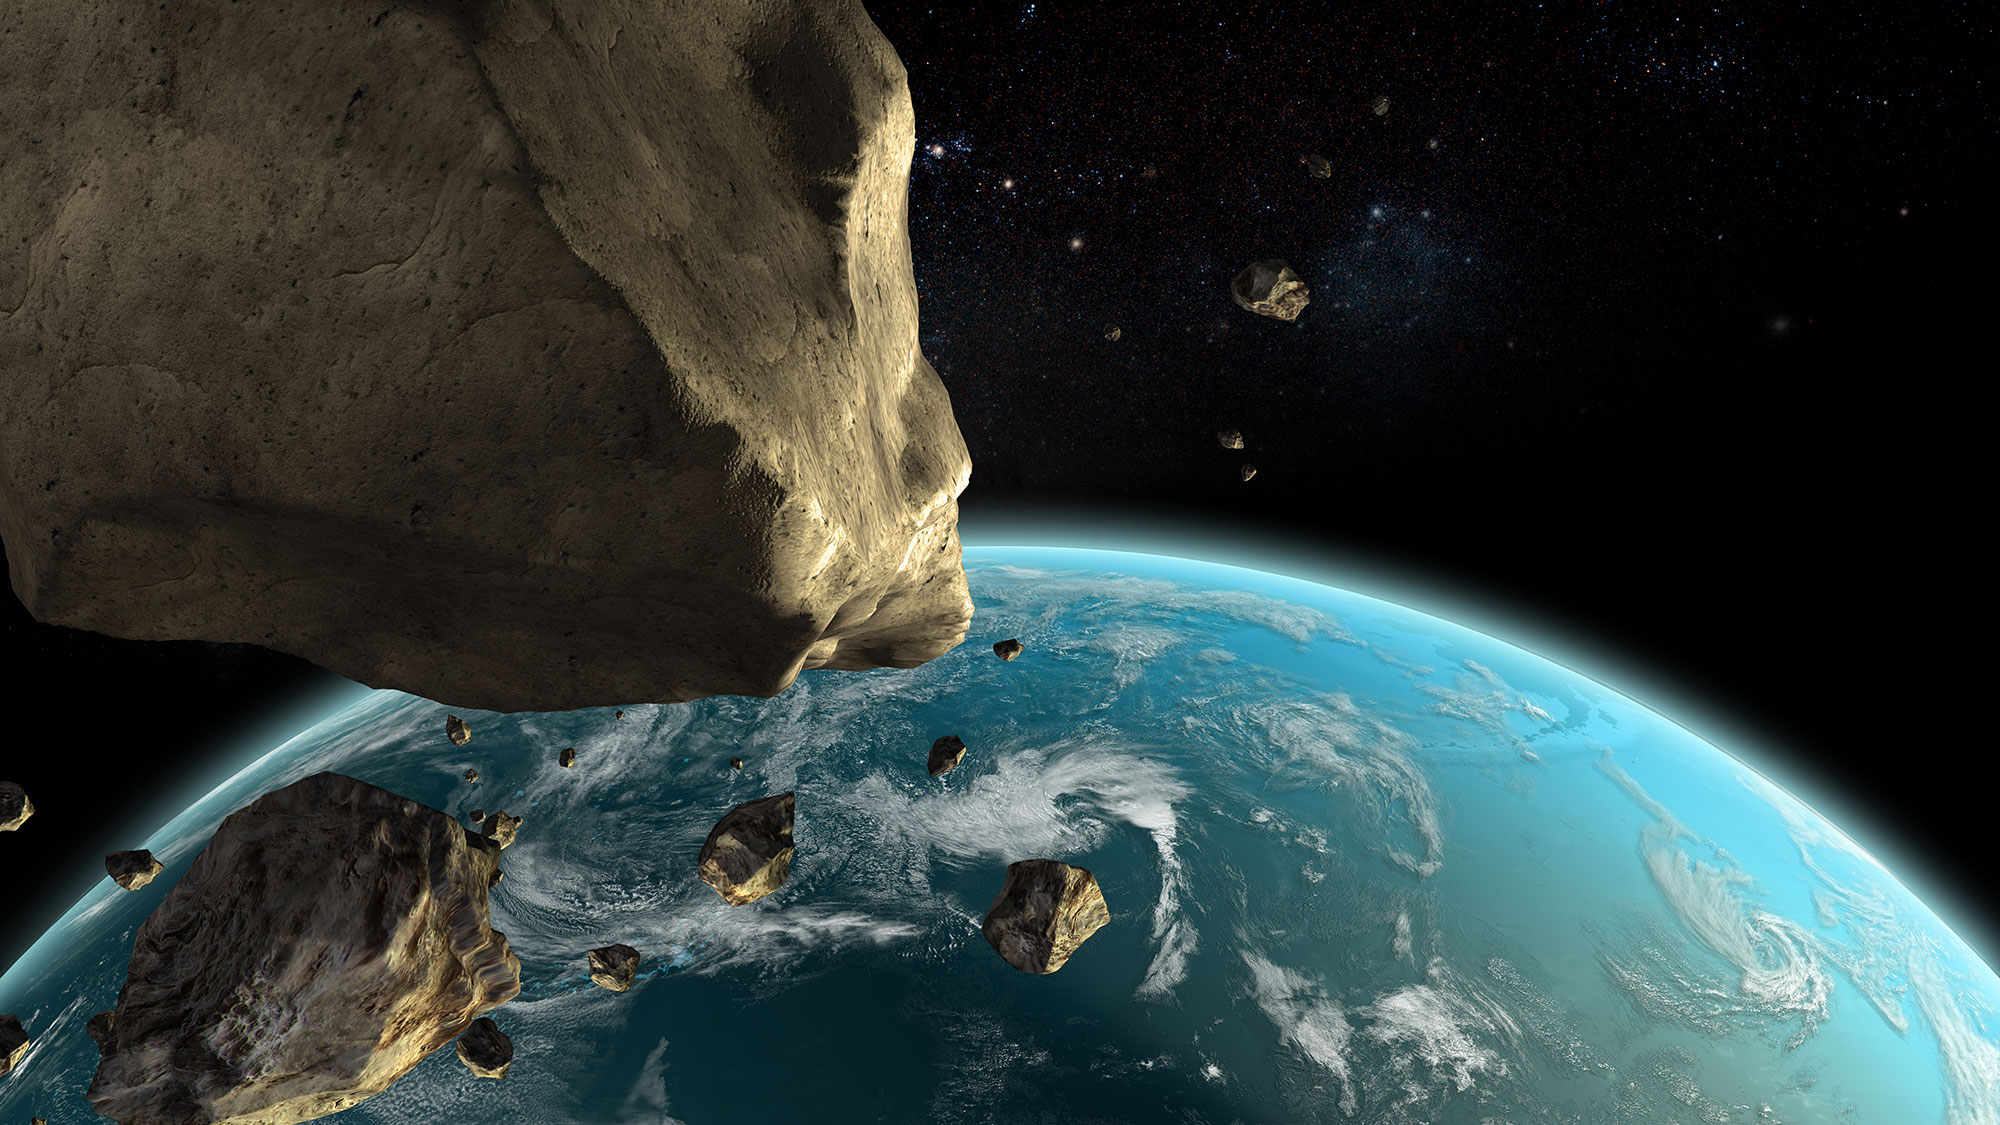 An asteroid closing in on Earth.